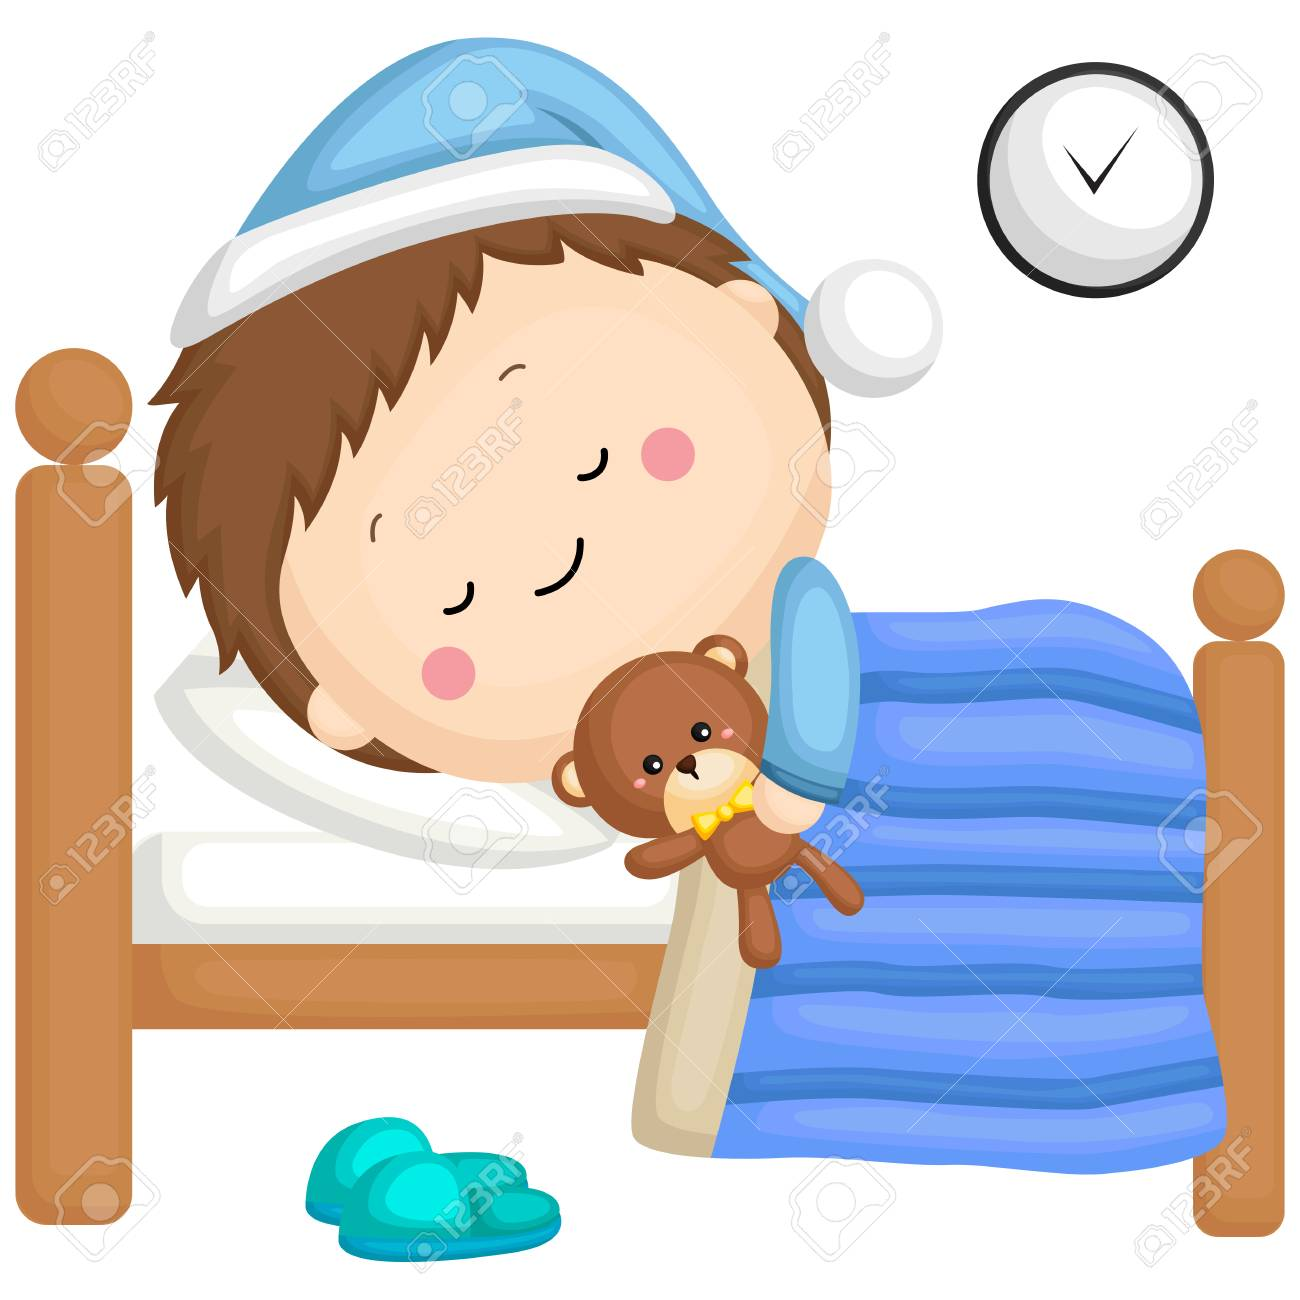 a boy sleeping in his bed with his teddy bear - 110750223